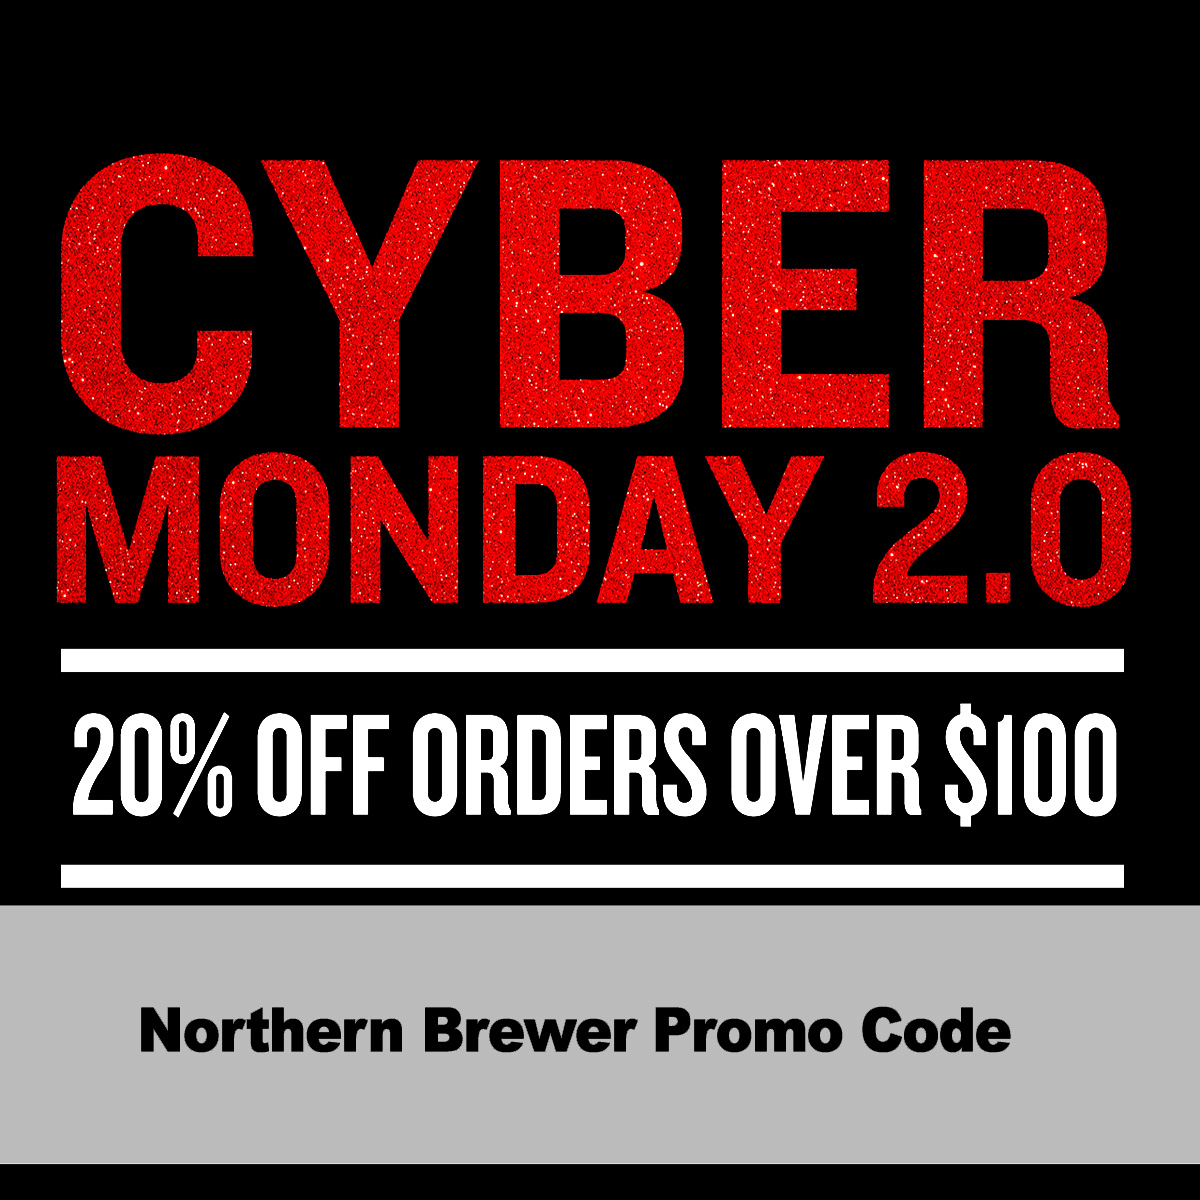 Northern Brewer Save 20% off any order over $100 NorthernBrewer.com Promo Code Coupon Code